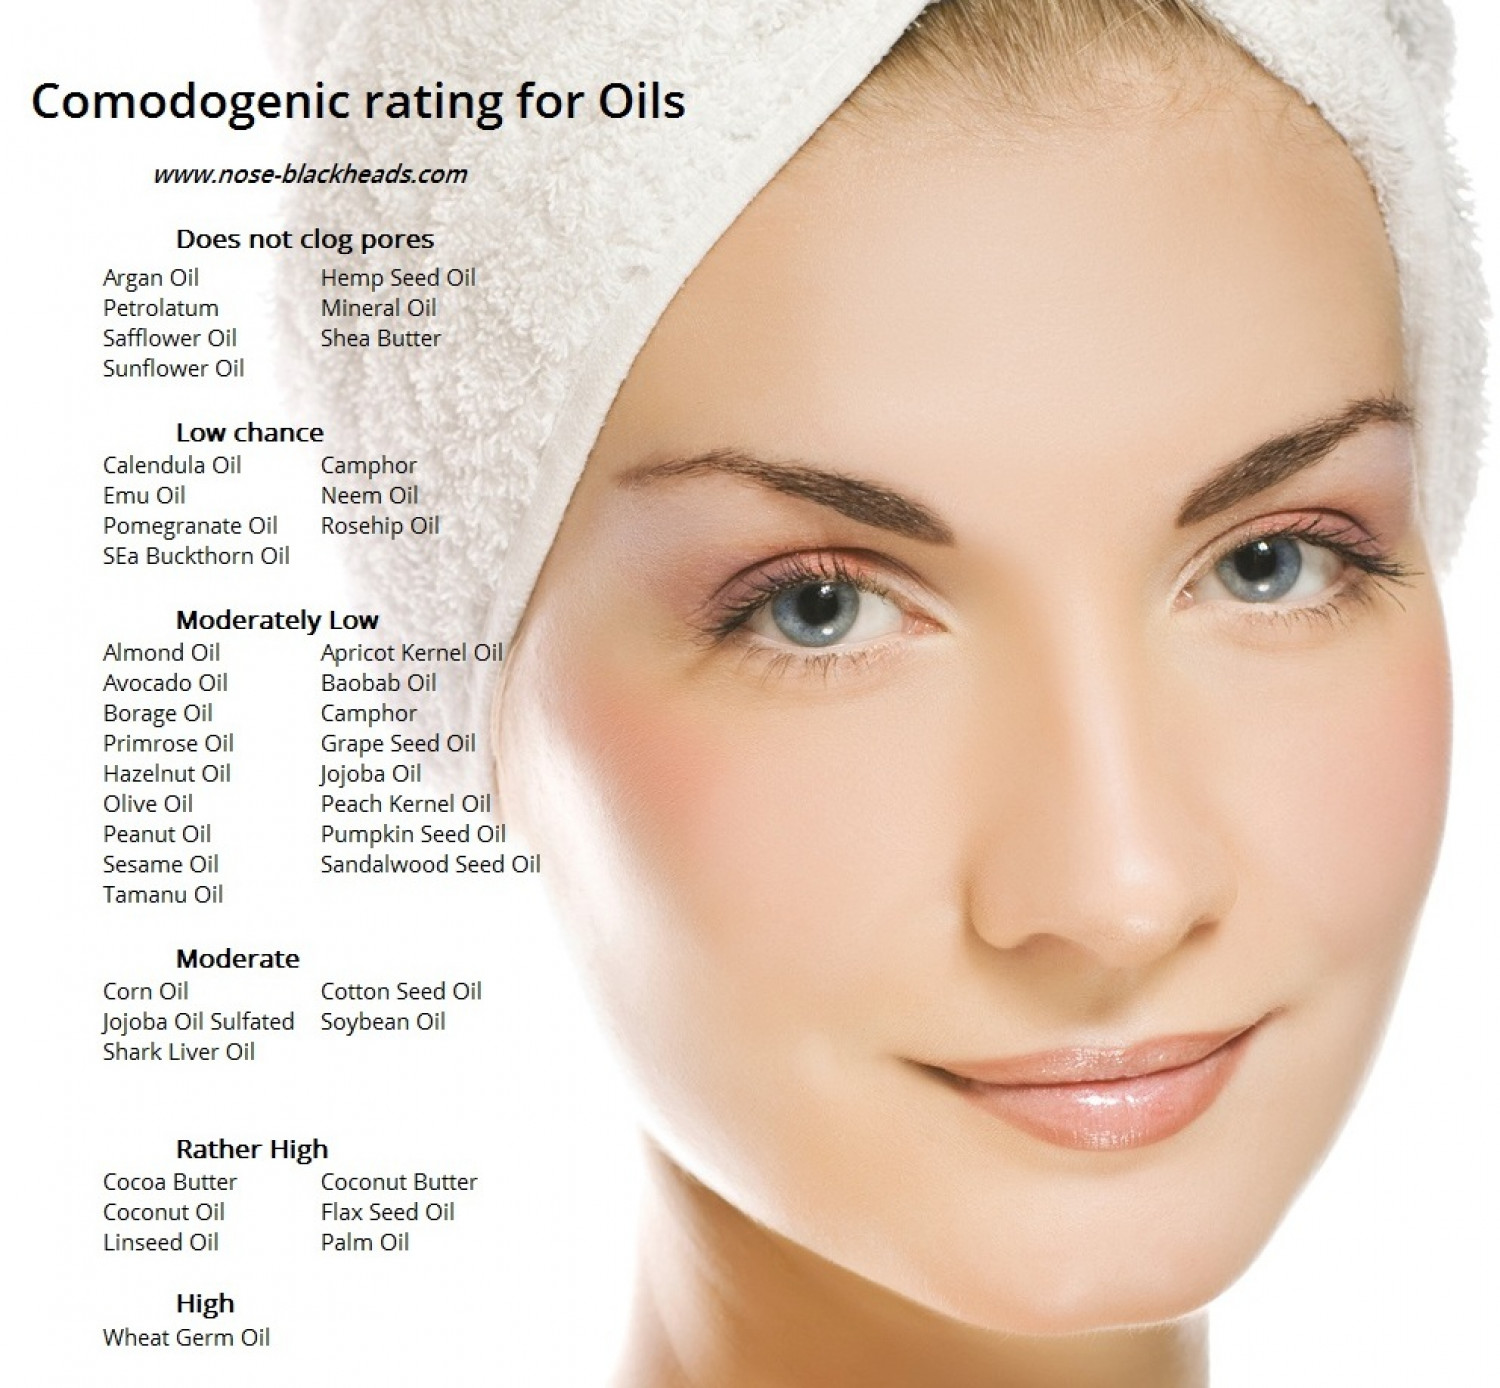 Comodogenic Rating for Oils Infographic